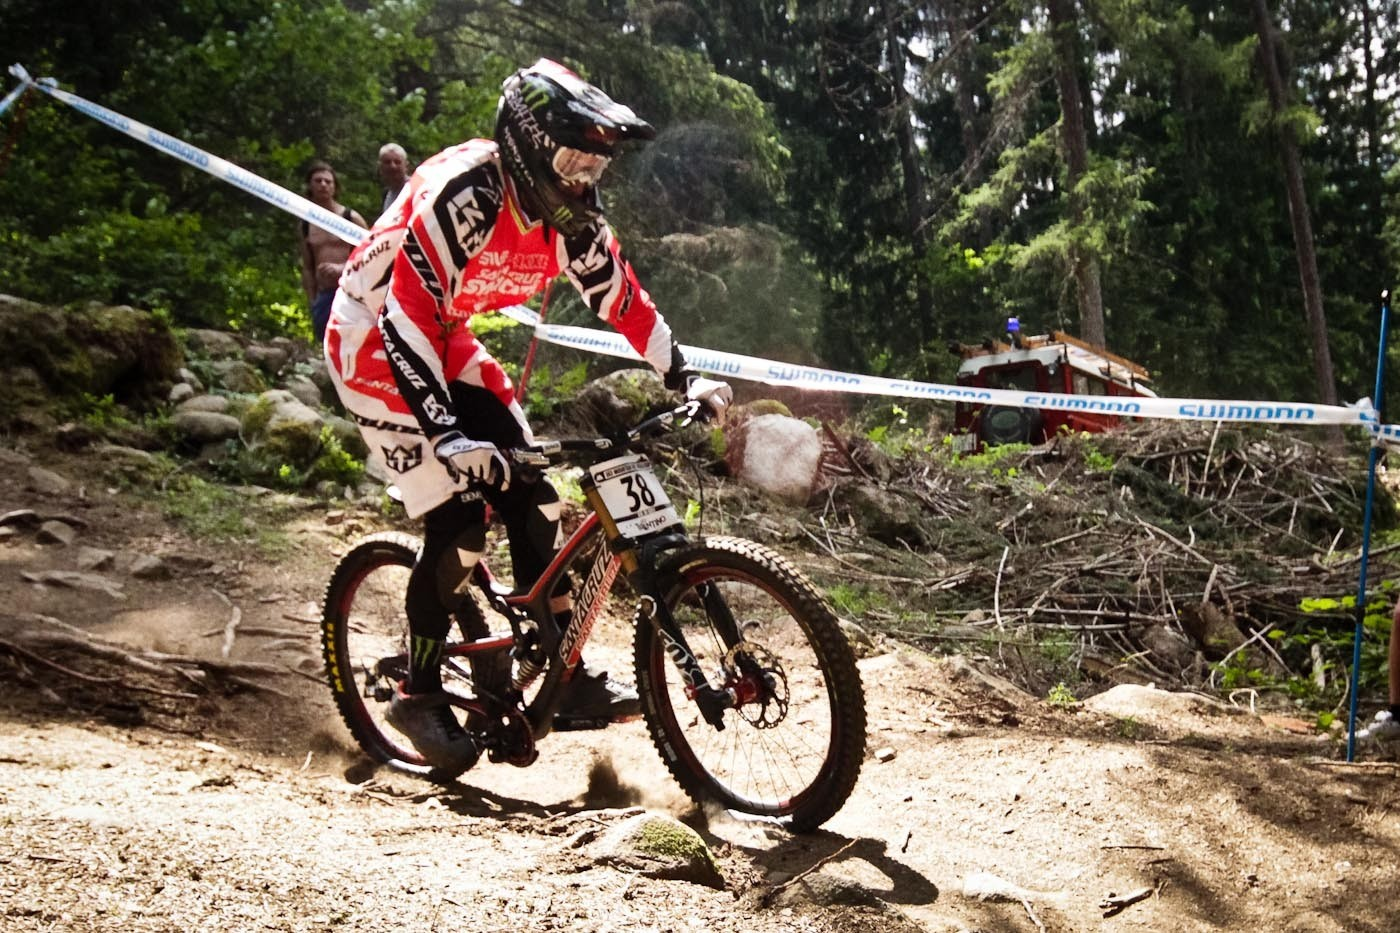 Steve Peat Santa Cruz V10c G-Out at Val di Sole - G-OUT PROJECT: 2013 Val di Sole World Cup - Mountain Biking Pictures - Vital MTB